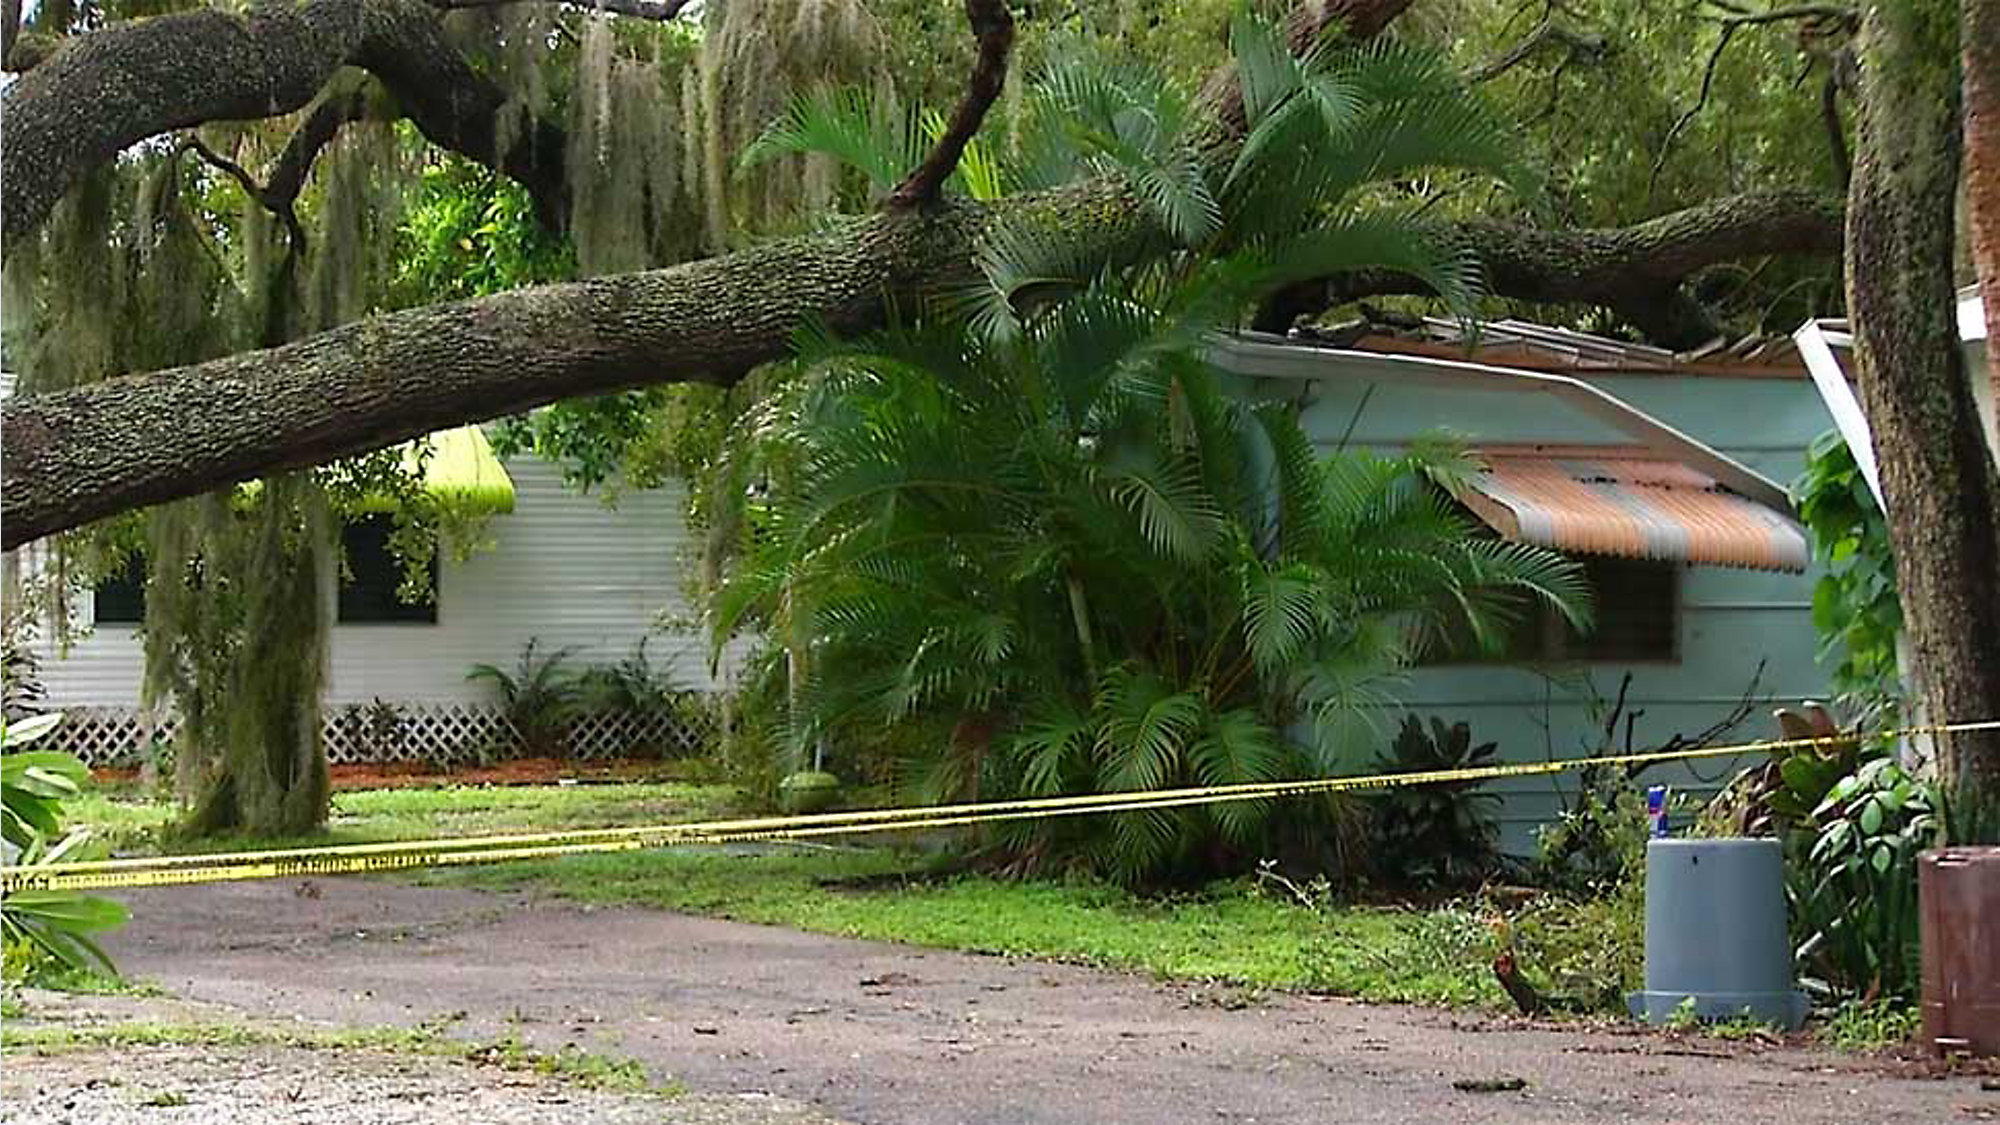 Home Destro by Tree; Property Managers Say Not at Fault on